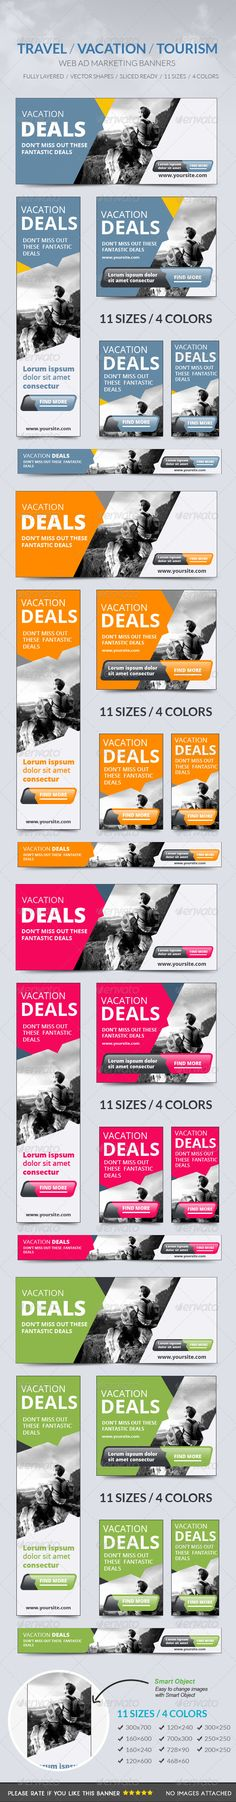 Travel Vacation Tourism Banner Template PSD   Buy and Download: http://graphicriver.net/item/travel-vacation-tourism-banner-/8715190?WT.ac=category_thumb&WT.z_author=msrashdi&ref=ksioks